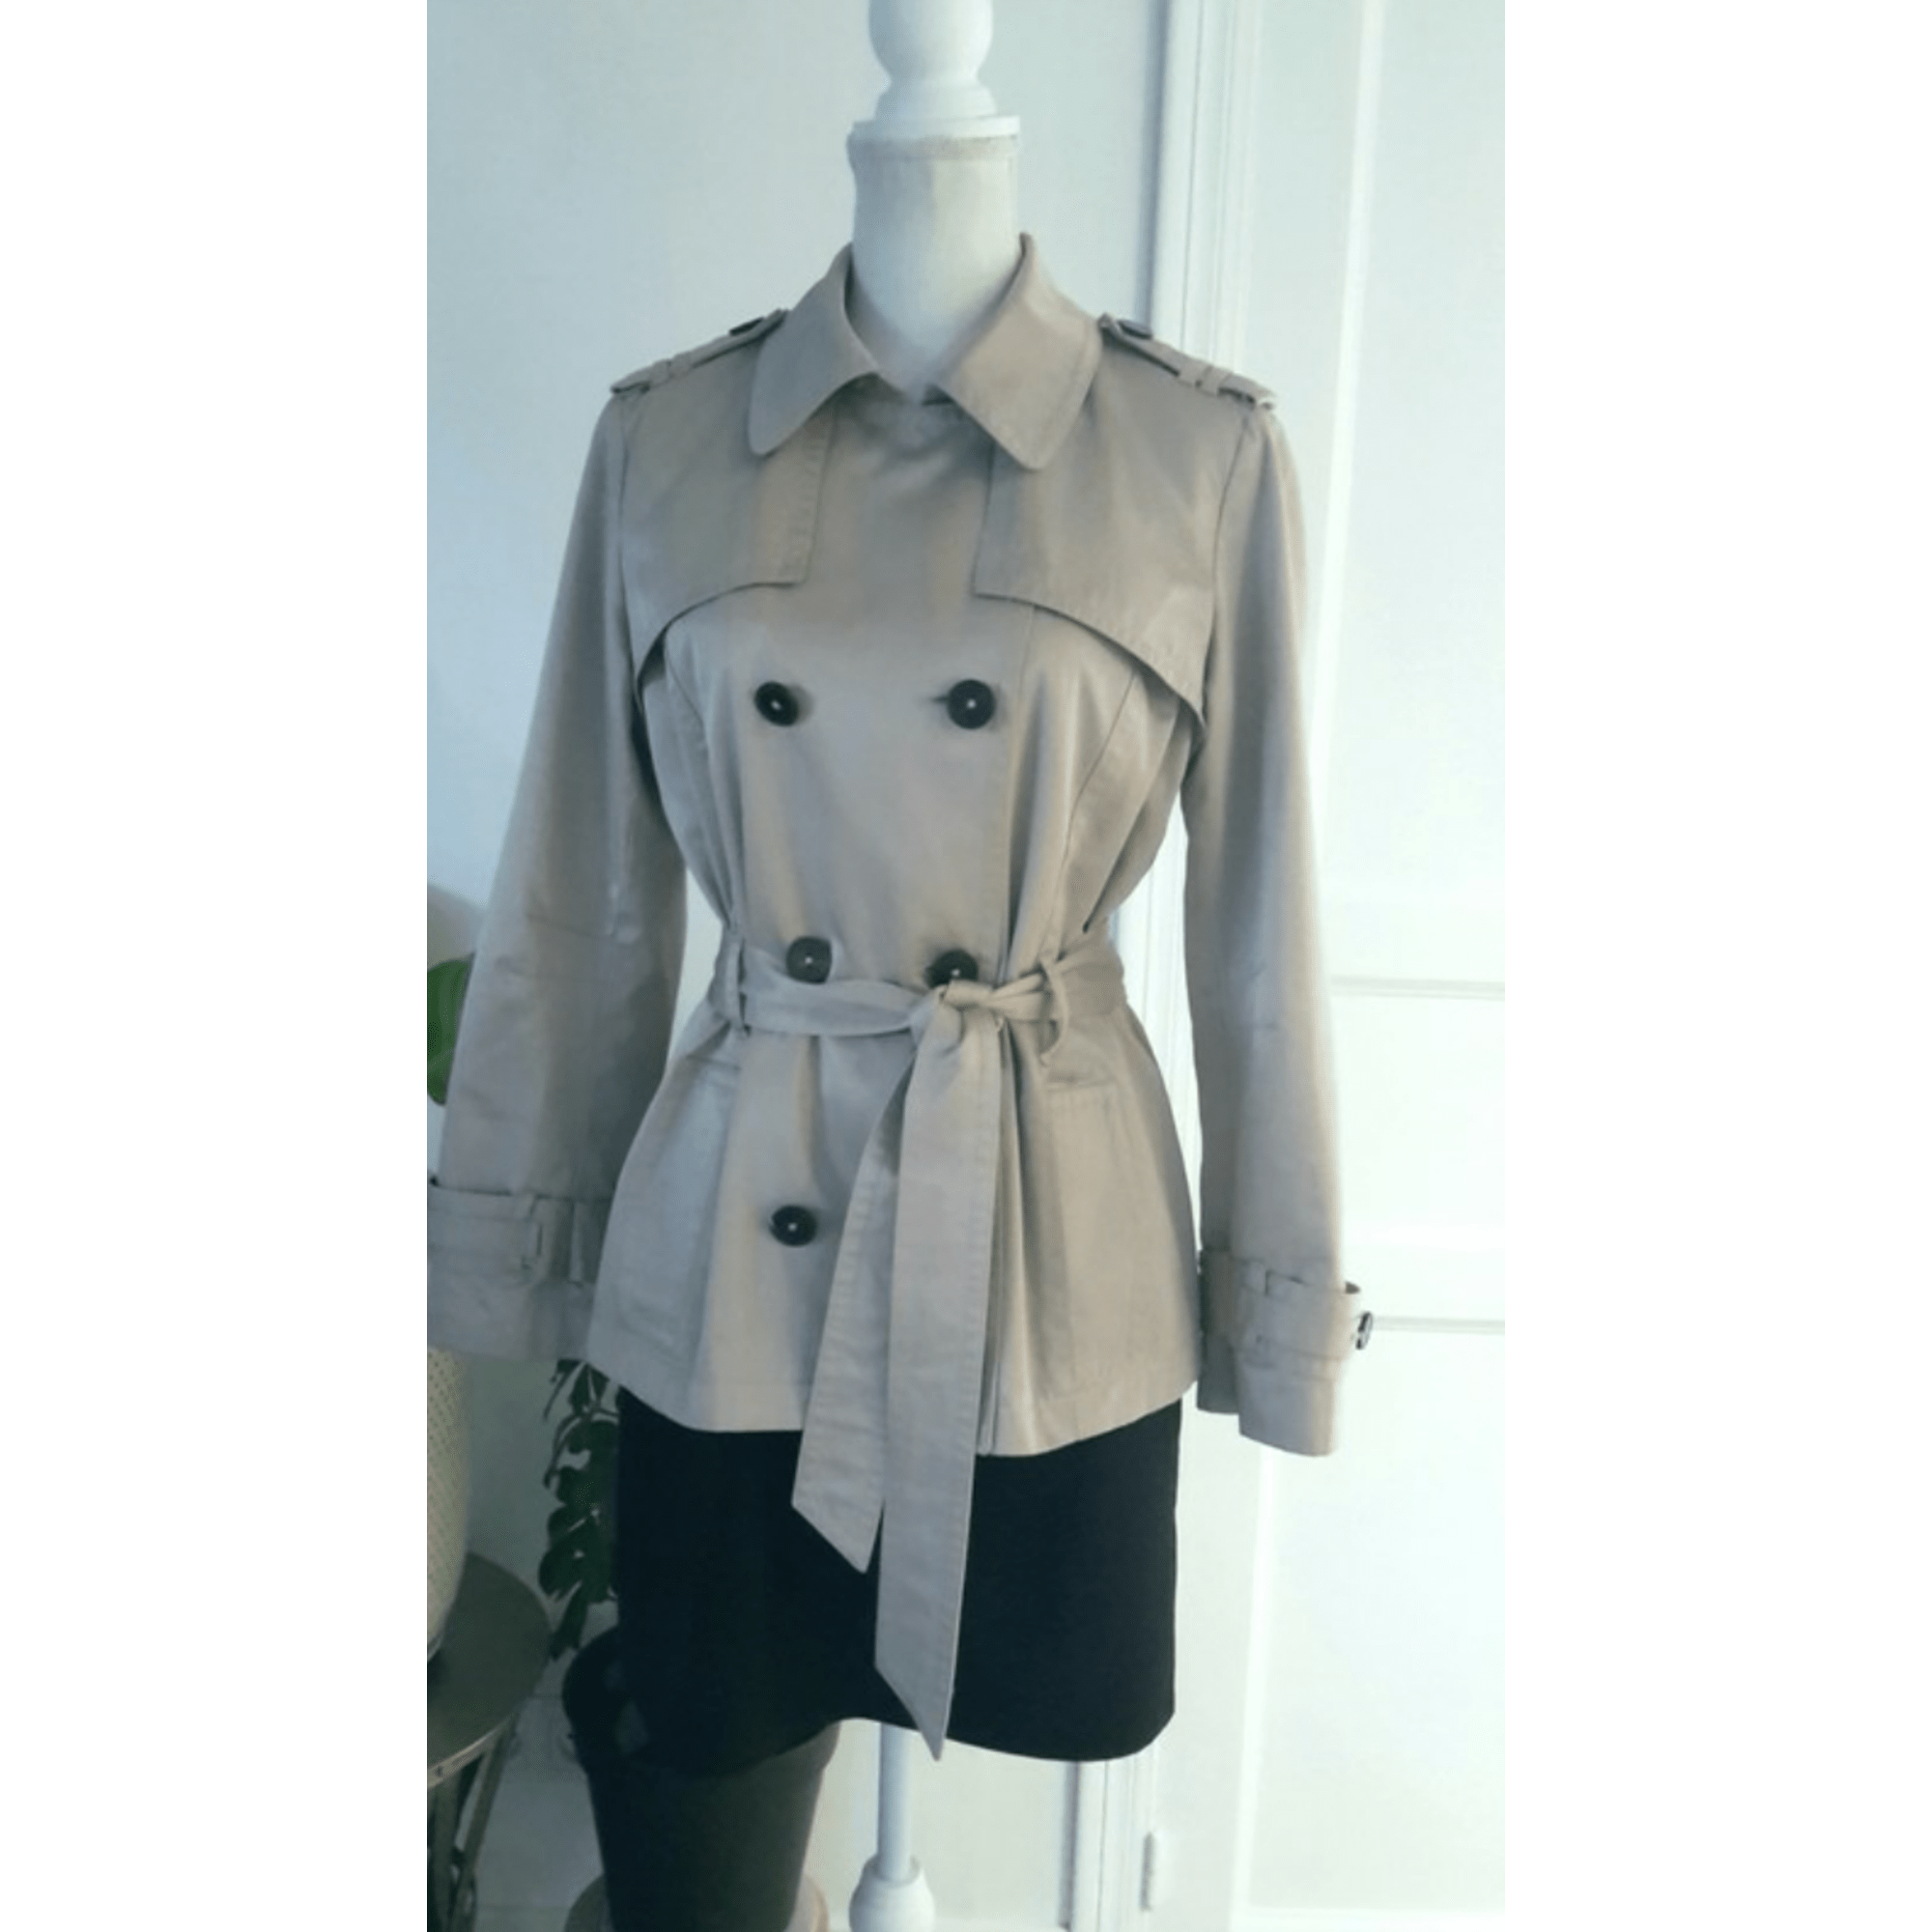 6670c644ae71 Imperméable, trench CAROLL 40 (L, T3) beige - 8427372